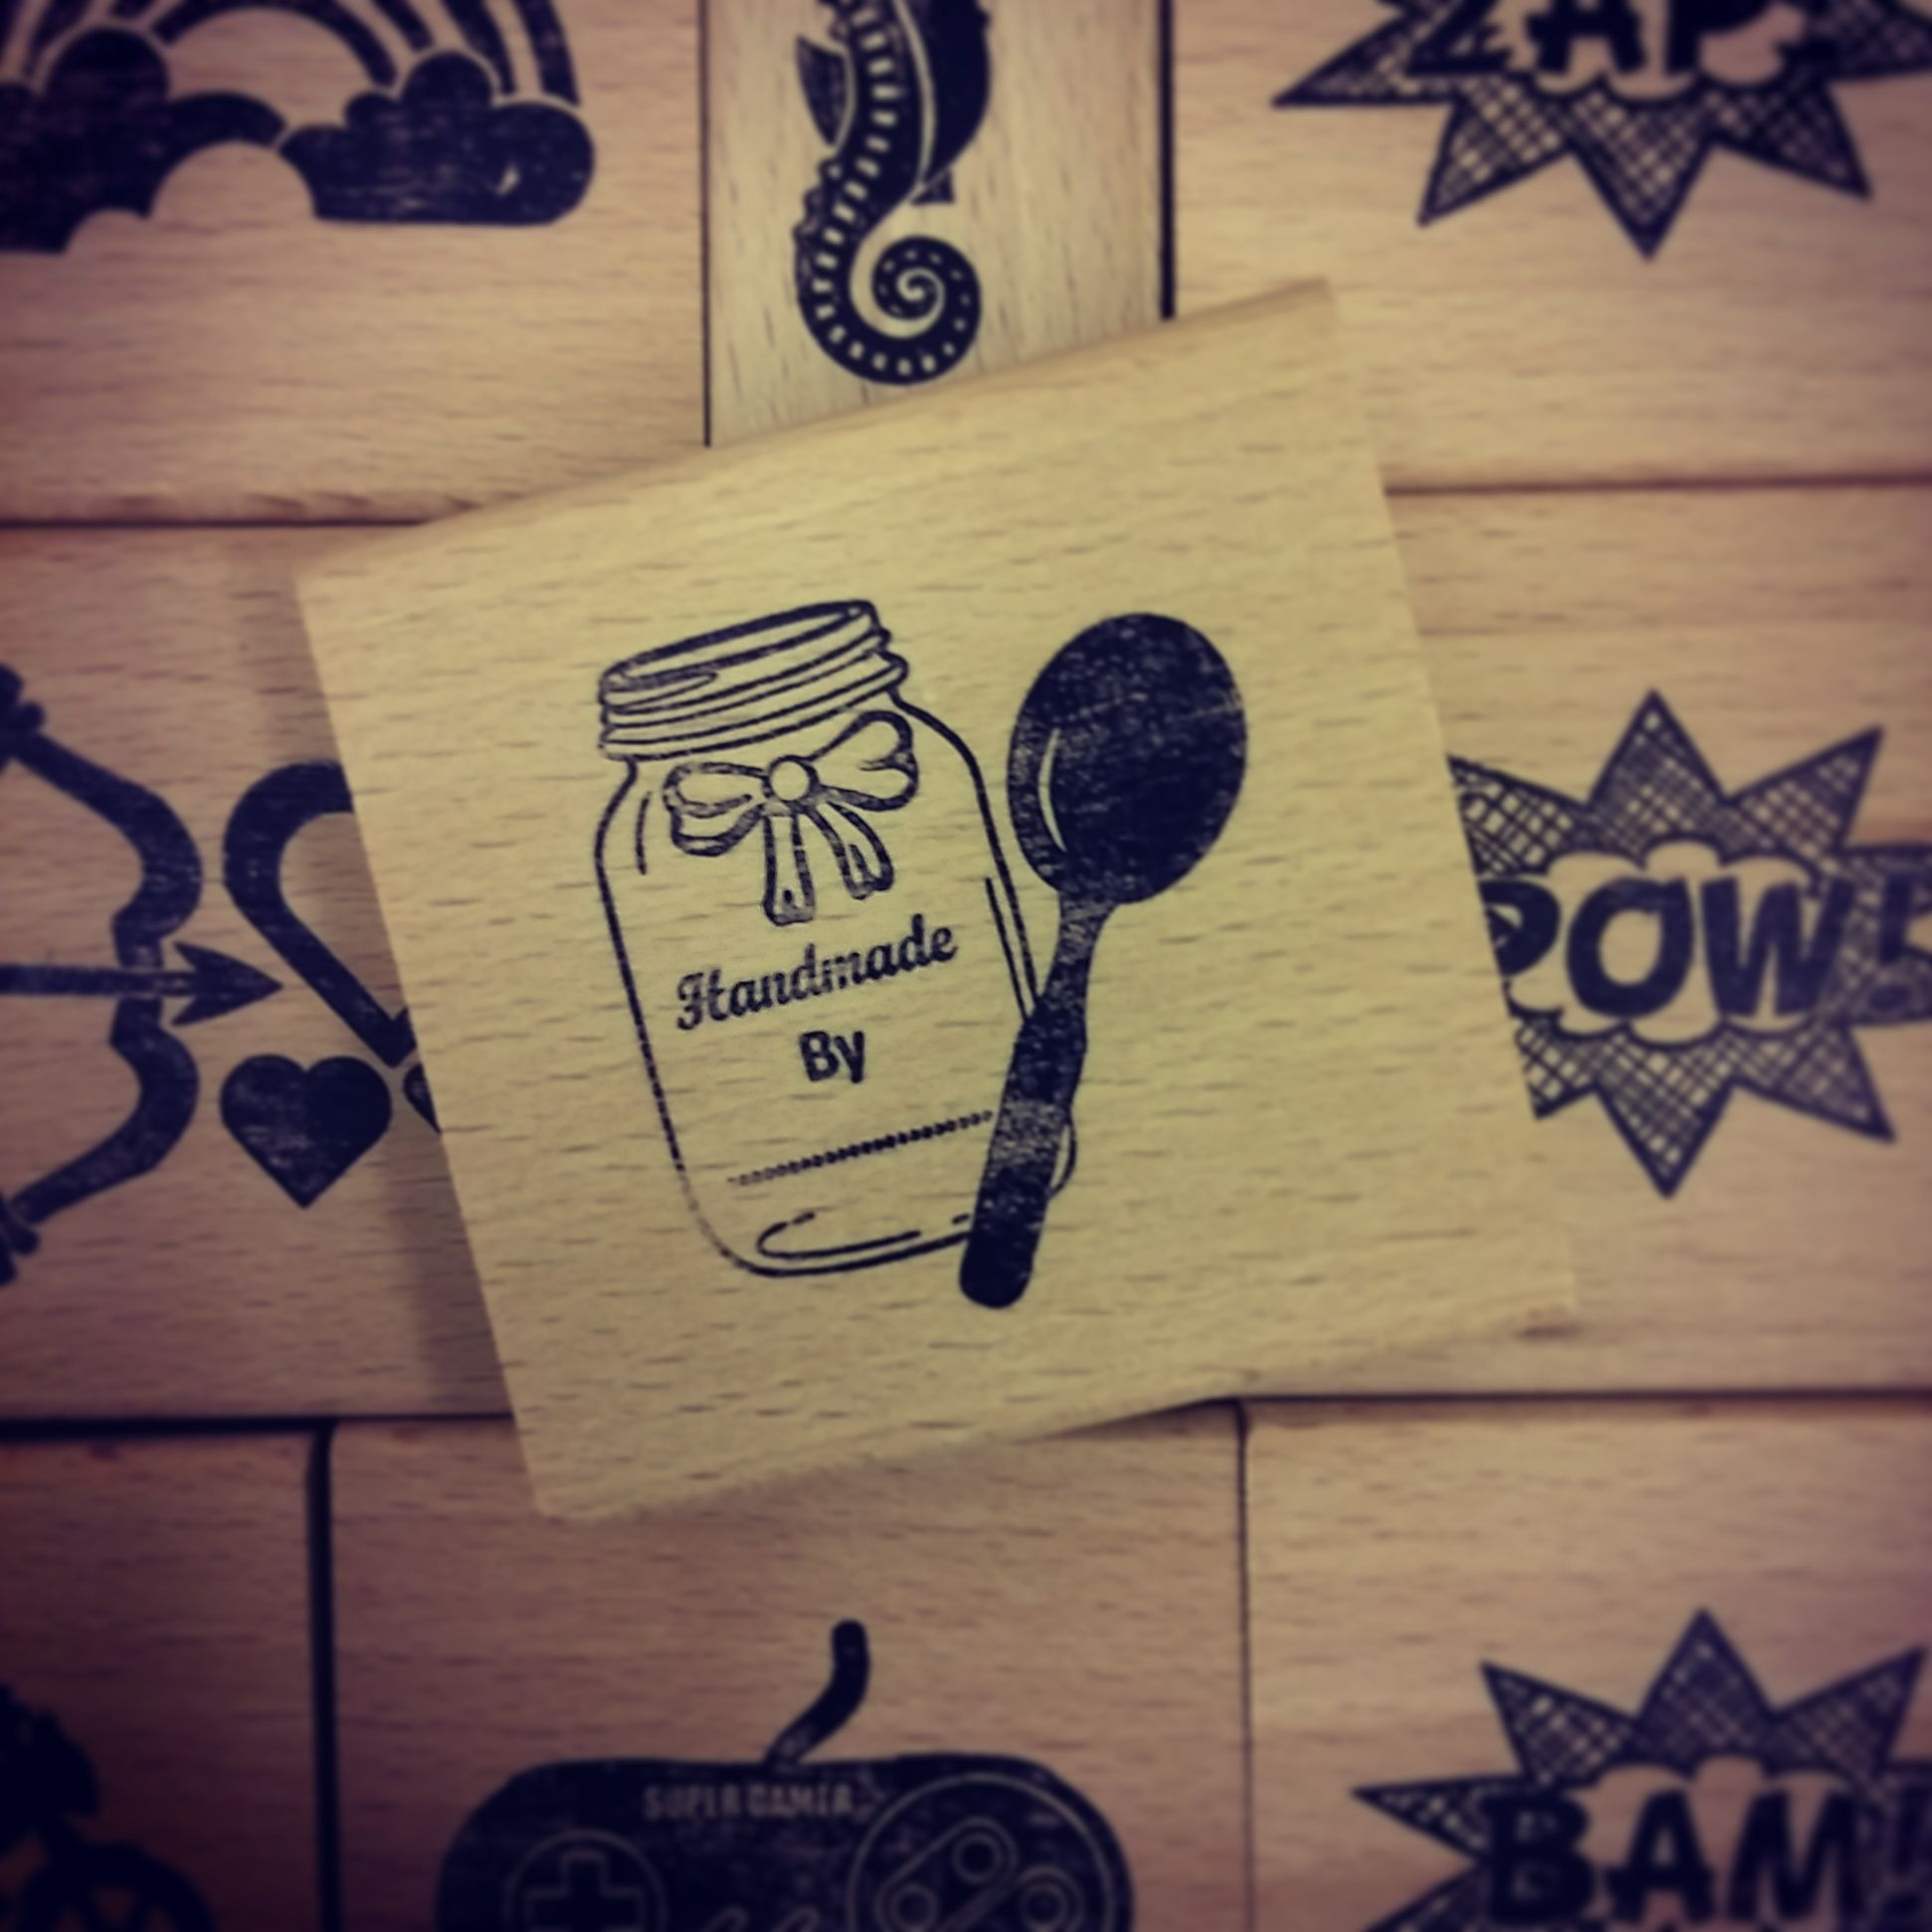 Available now in our #Etsy Store.  #Handmade #RubberStamp #EtsySeller #EtsyStore #Cardmaking #Scrapbooking #SheffieldIsSuper #FarmersMarket